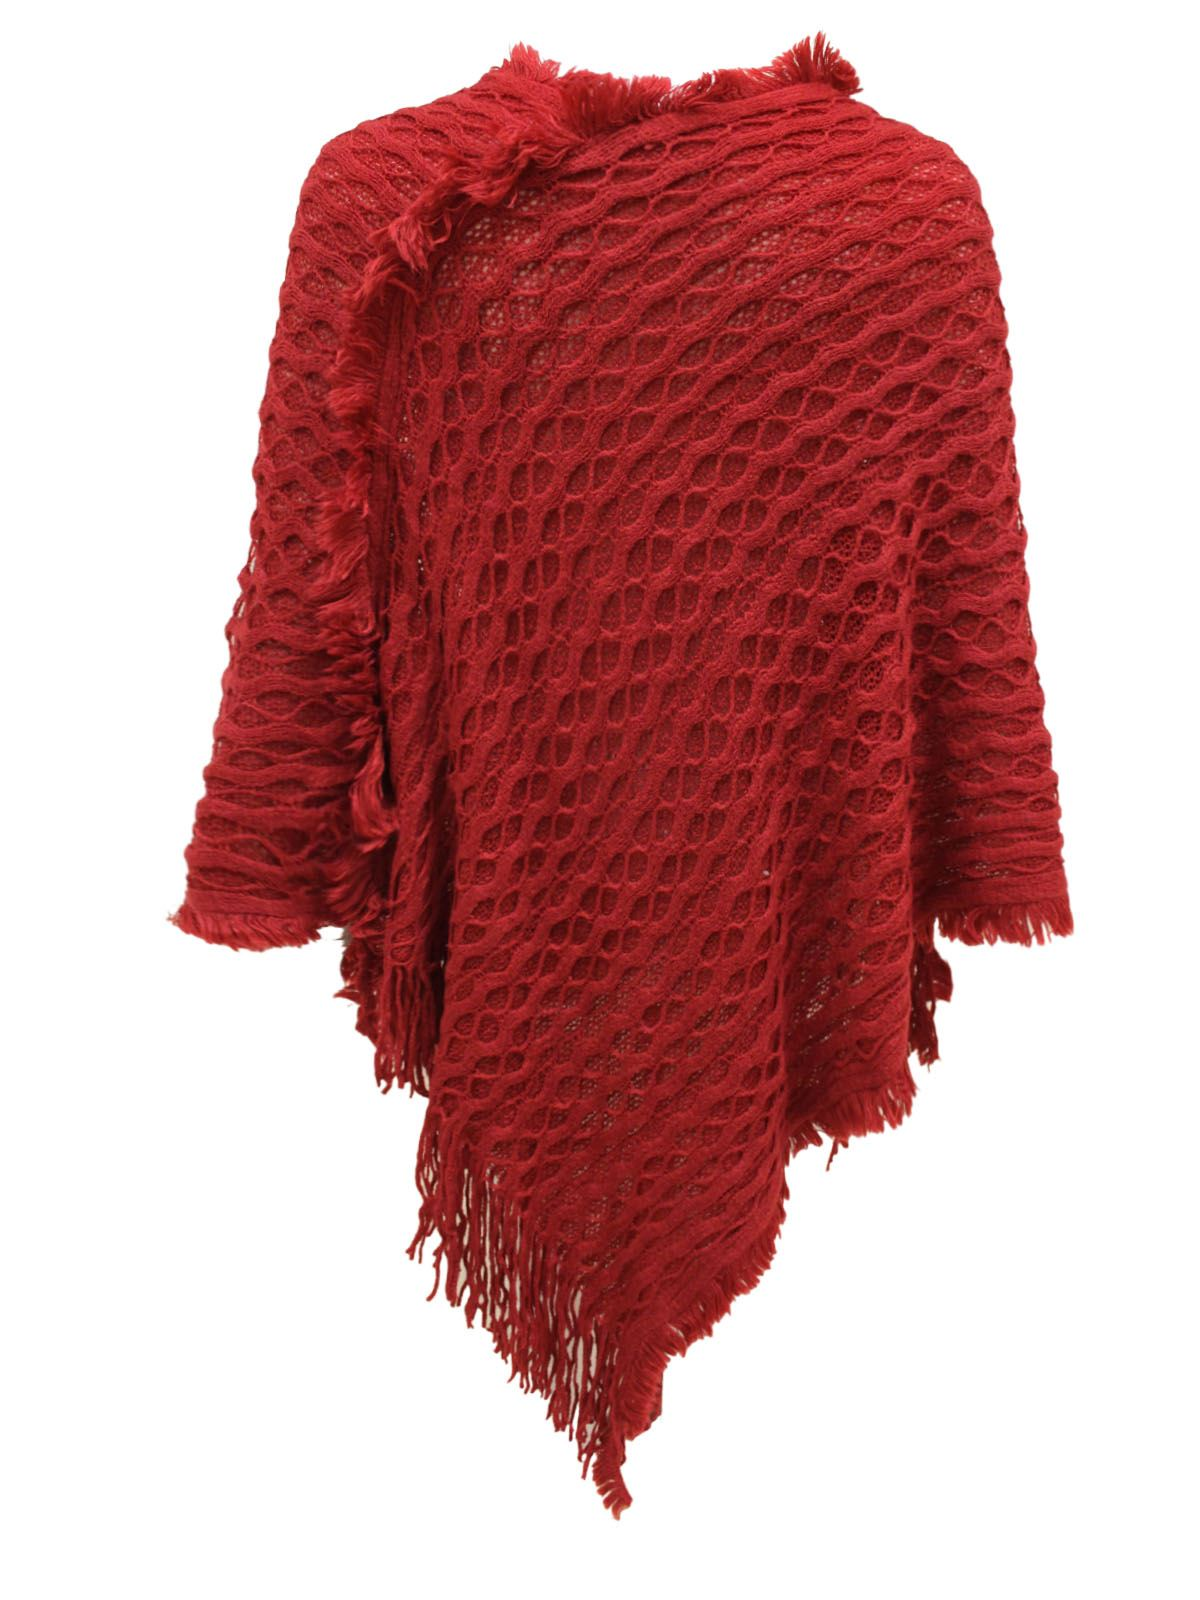 Ladies Shawl Sweater Womens Ladies New Knitted Warm Poncho Cape Wrap Shawl